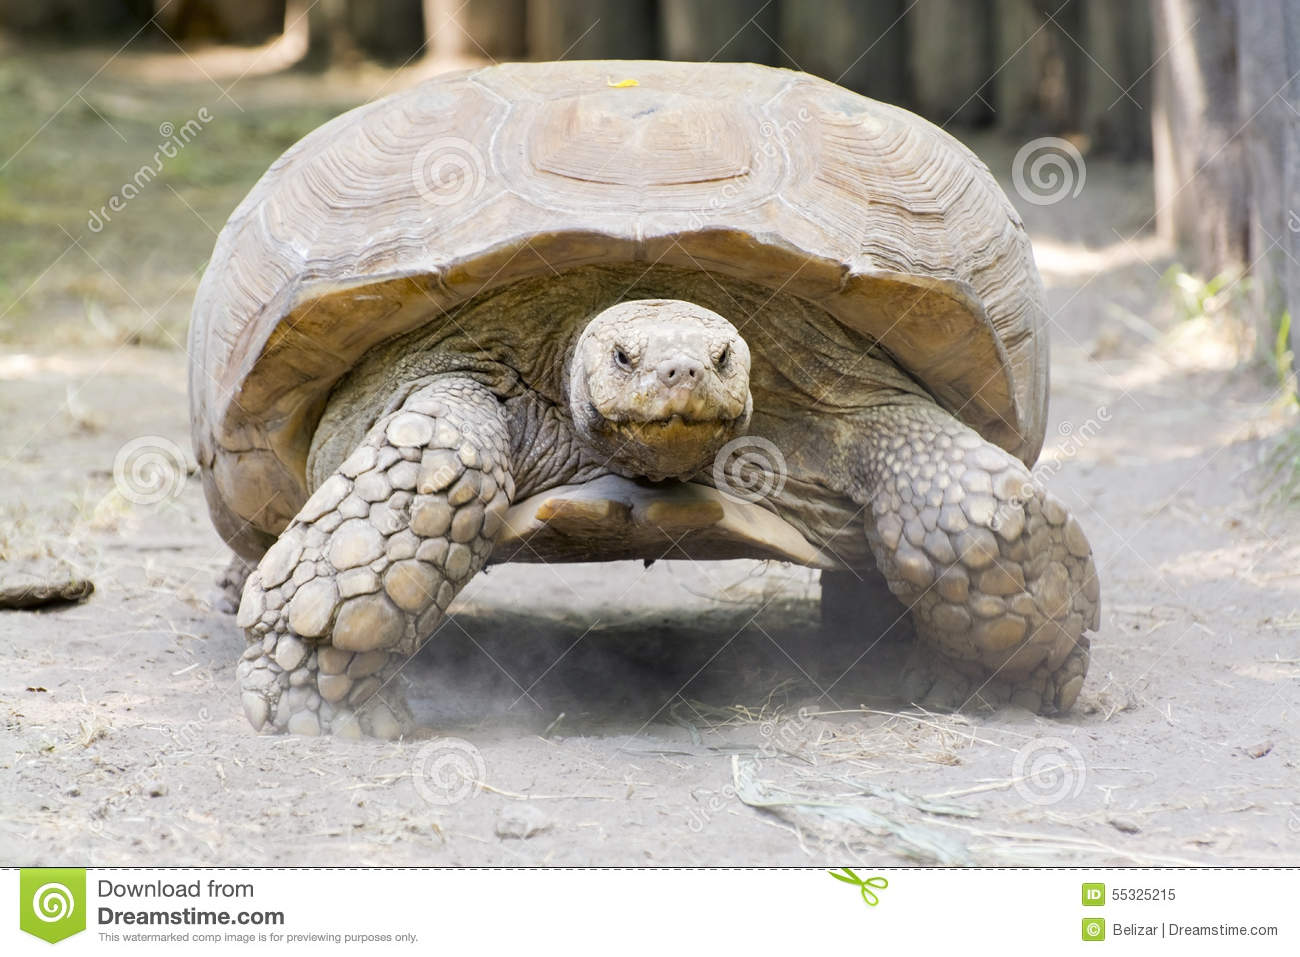 Sulcata Tortoise clipart #9, Download drawings